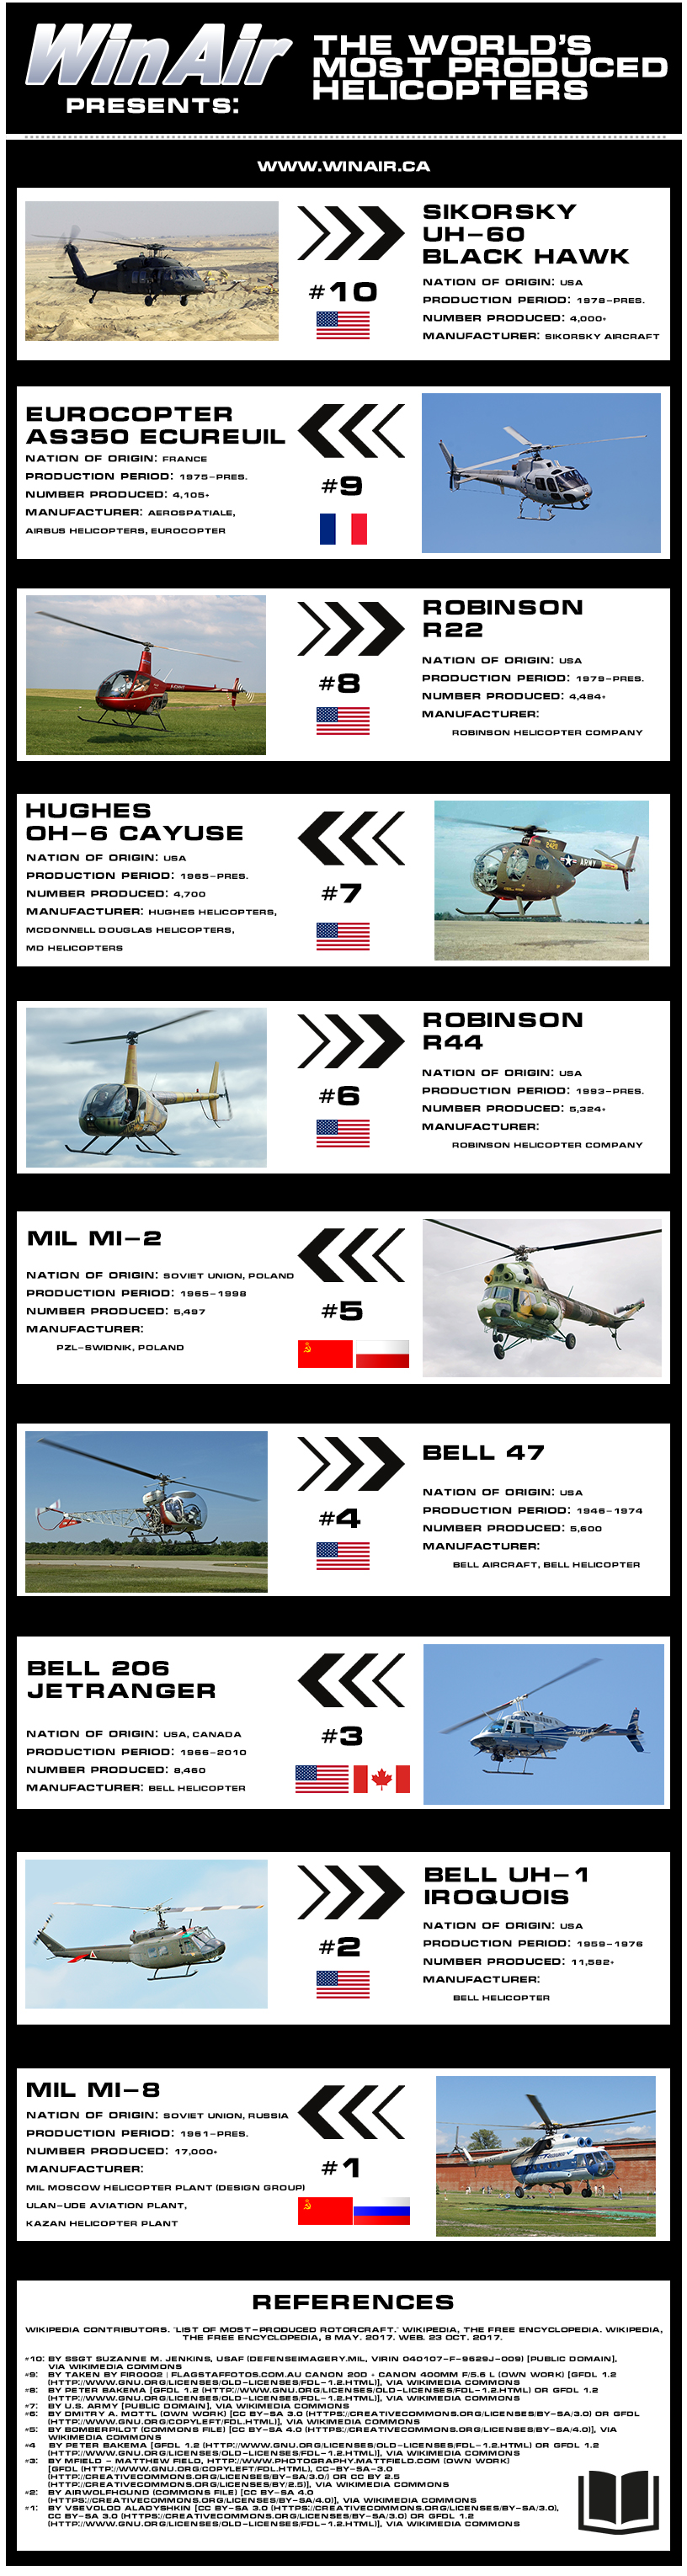 World's Most Produced Helicopters Infographic